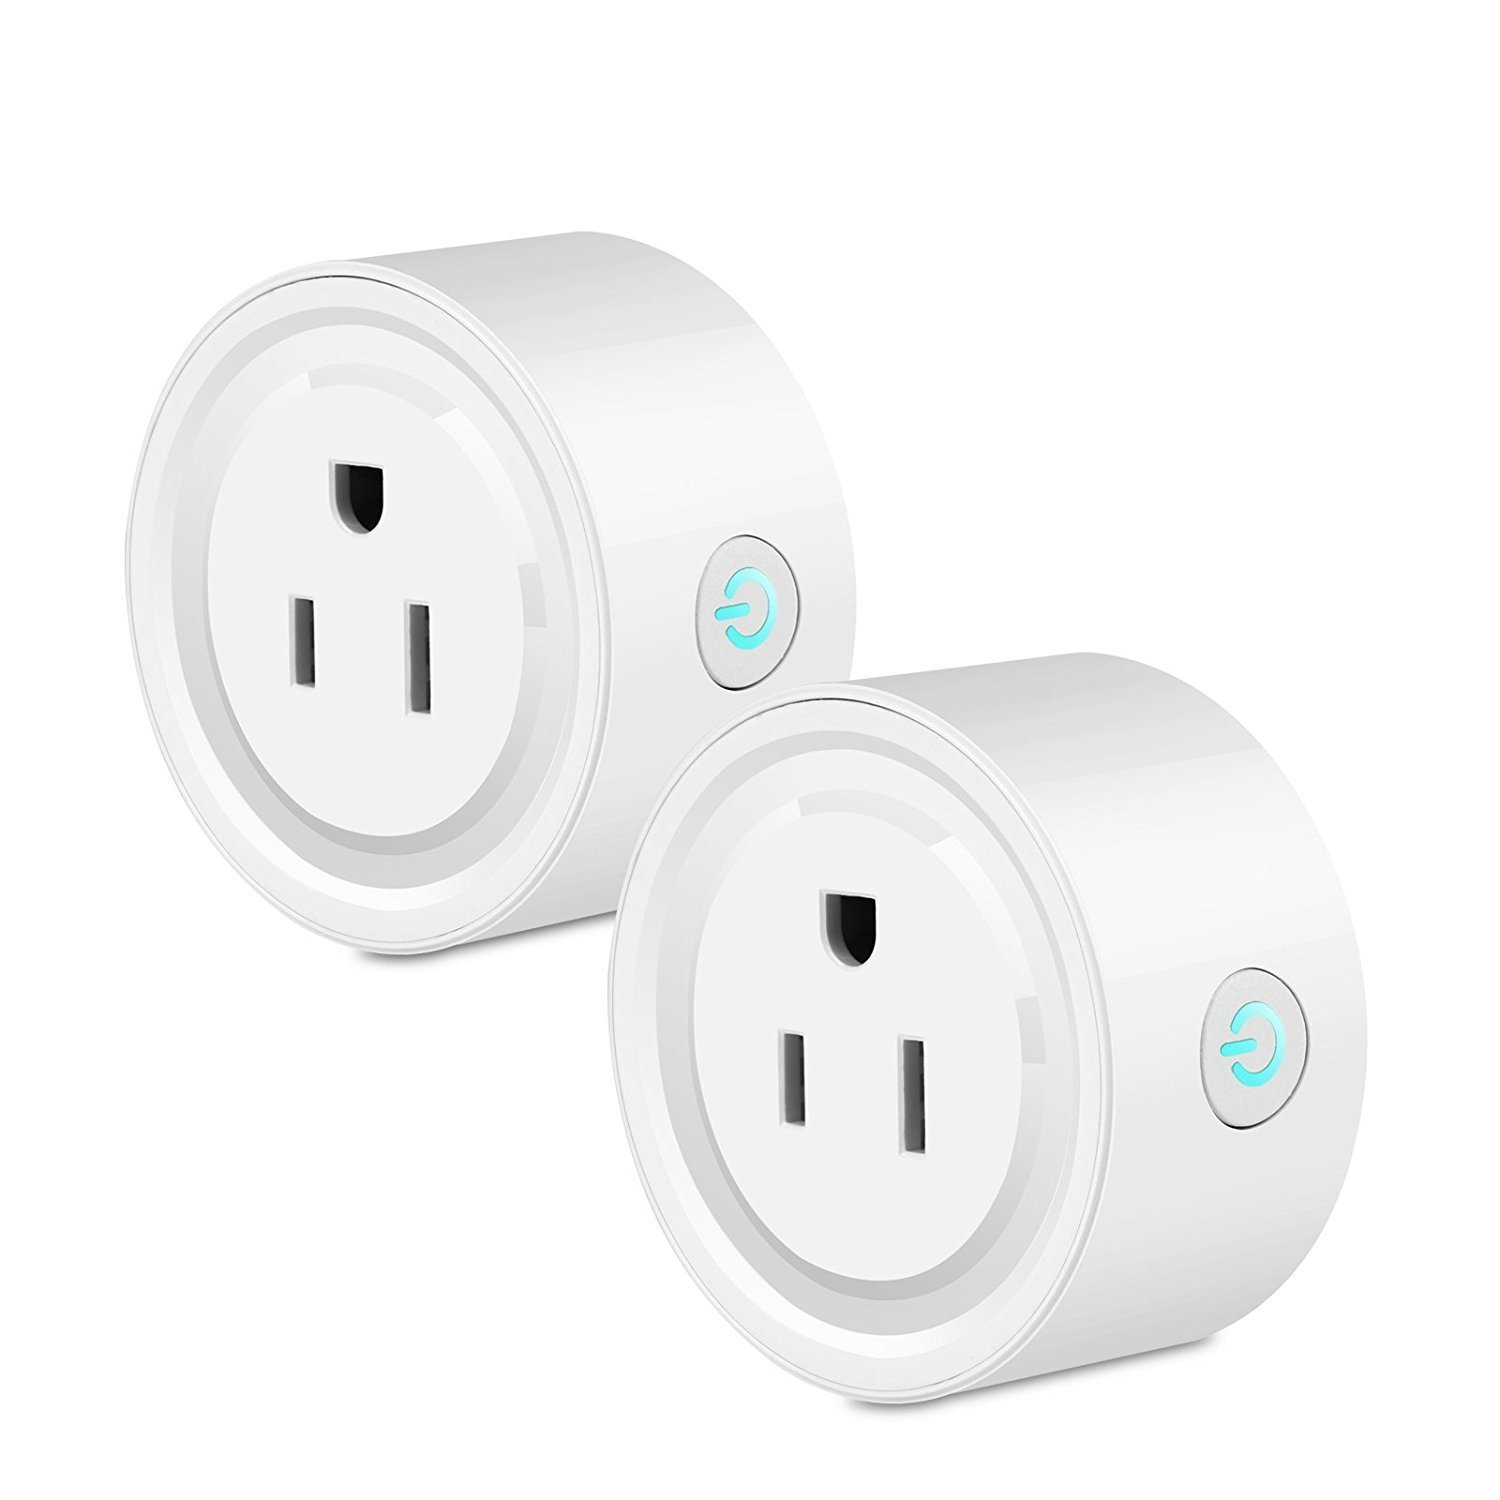 Smart Wifi Plug Outlet Compatible with Alexa, Google Home IFTTT Technuv 2 Packs Mini Socket Timing Function No Hub Required for iOS Android Smartphone Tablet Voice and Remote Control